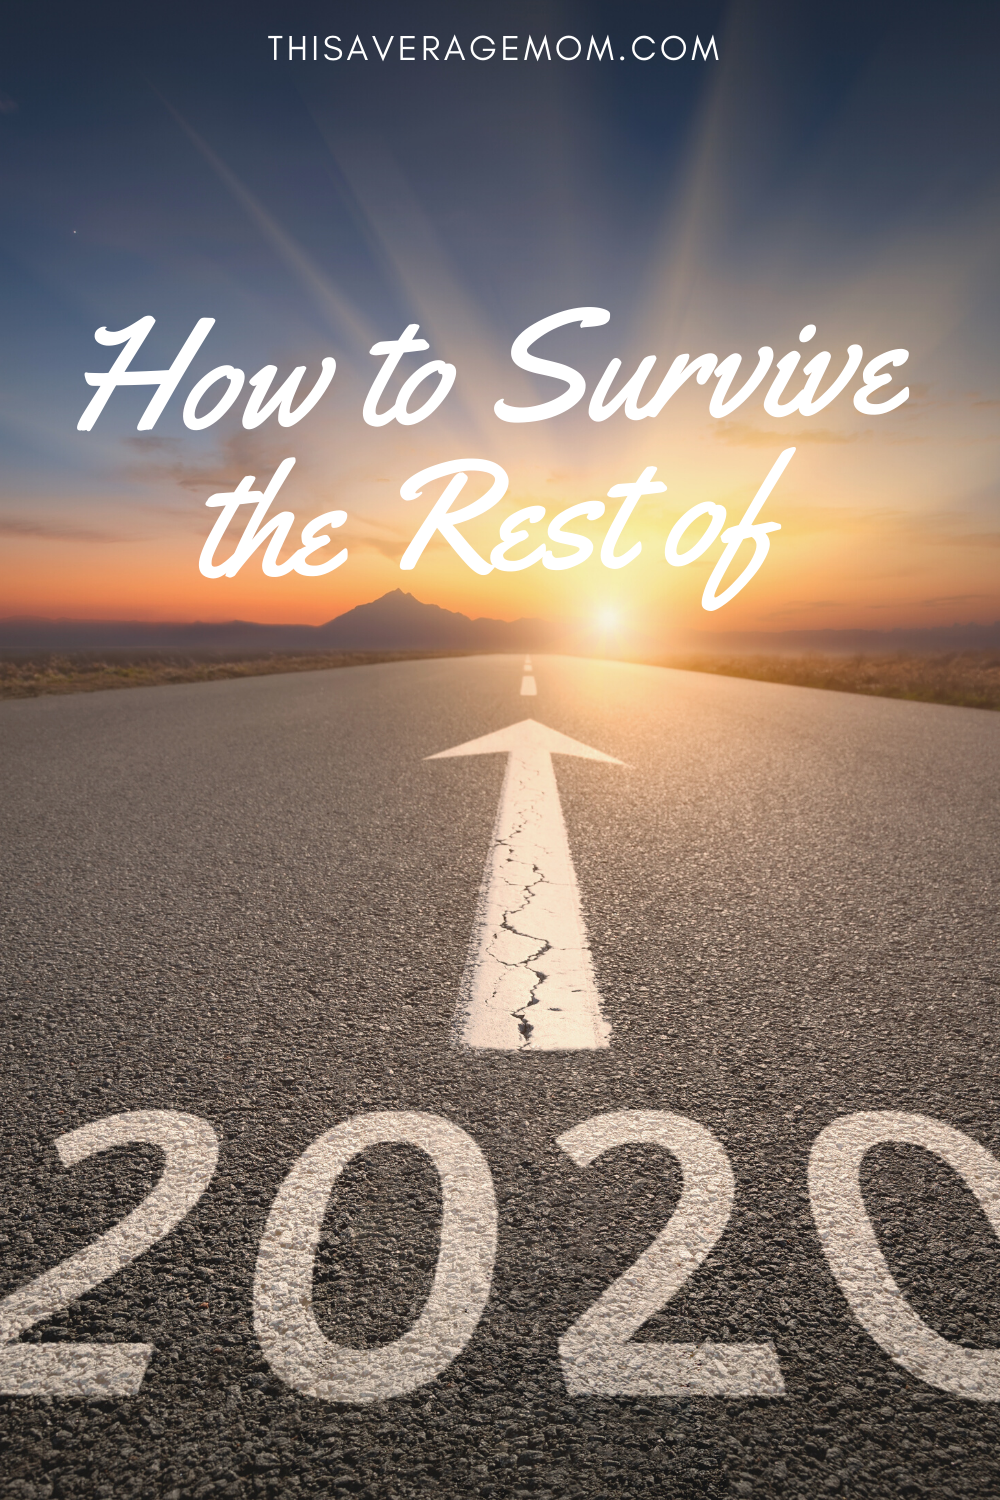 2020 has been A YEAR. But let's be sure we don't write off the whole entire thing, because we're almost upon holiday season! Here's how to survive the rest of this year and find happiness even during a time we least expect it.